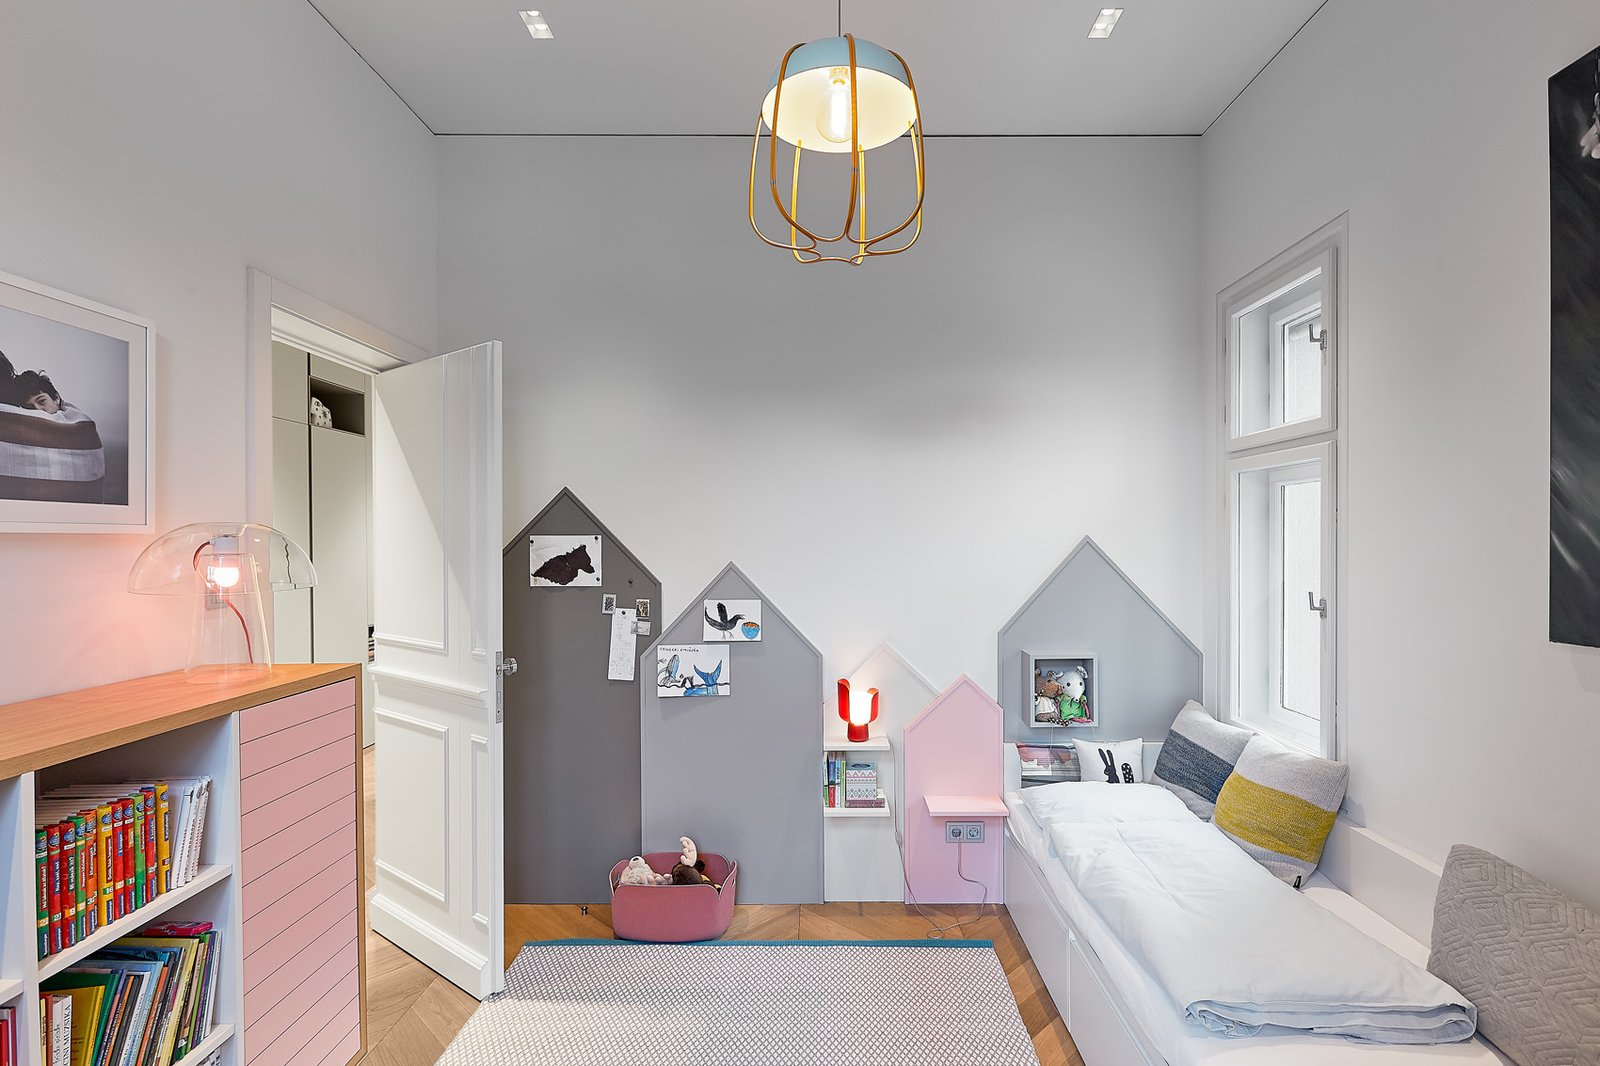 Kids Room, Playroom Room Type, Bedroom Room Type, Storage, Shelves, Lamps, Light Hardwood Floor, and Rug Floor  Photo 10 of 17 in A Family Villa in Budapest With Colorful, 1960s-Inspired Interiors